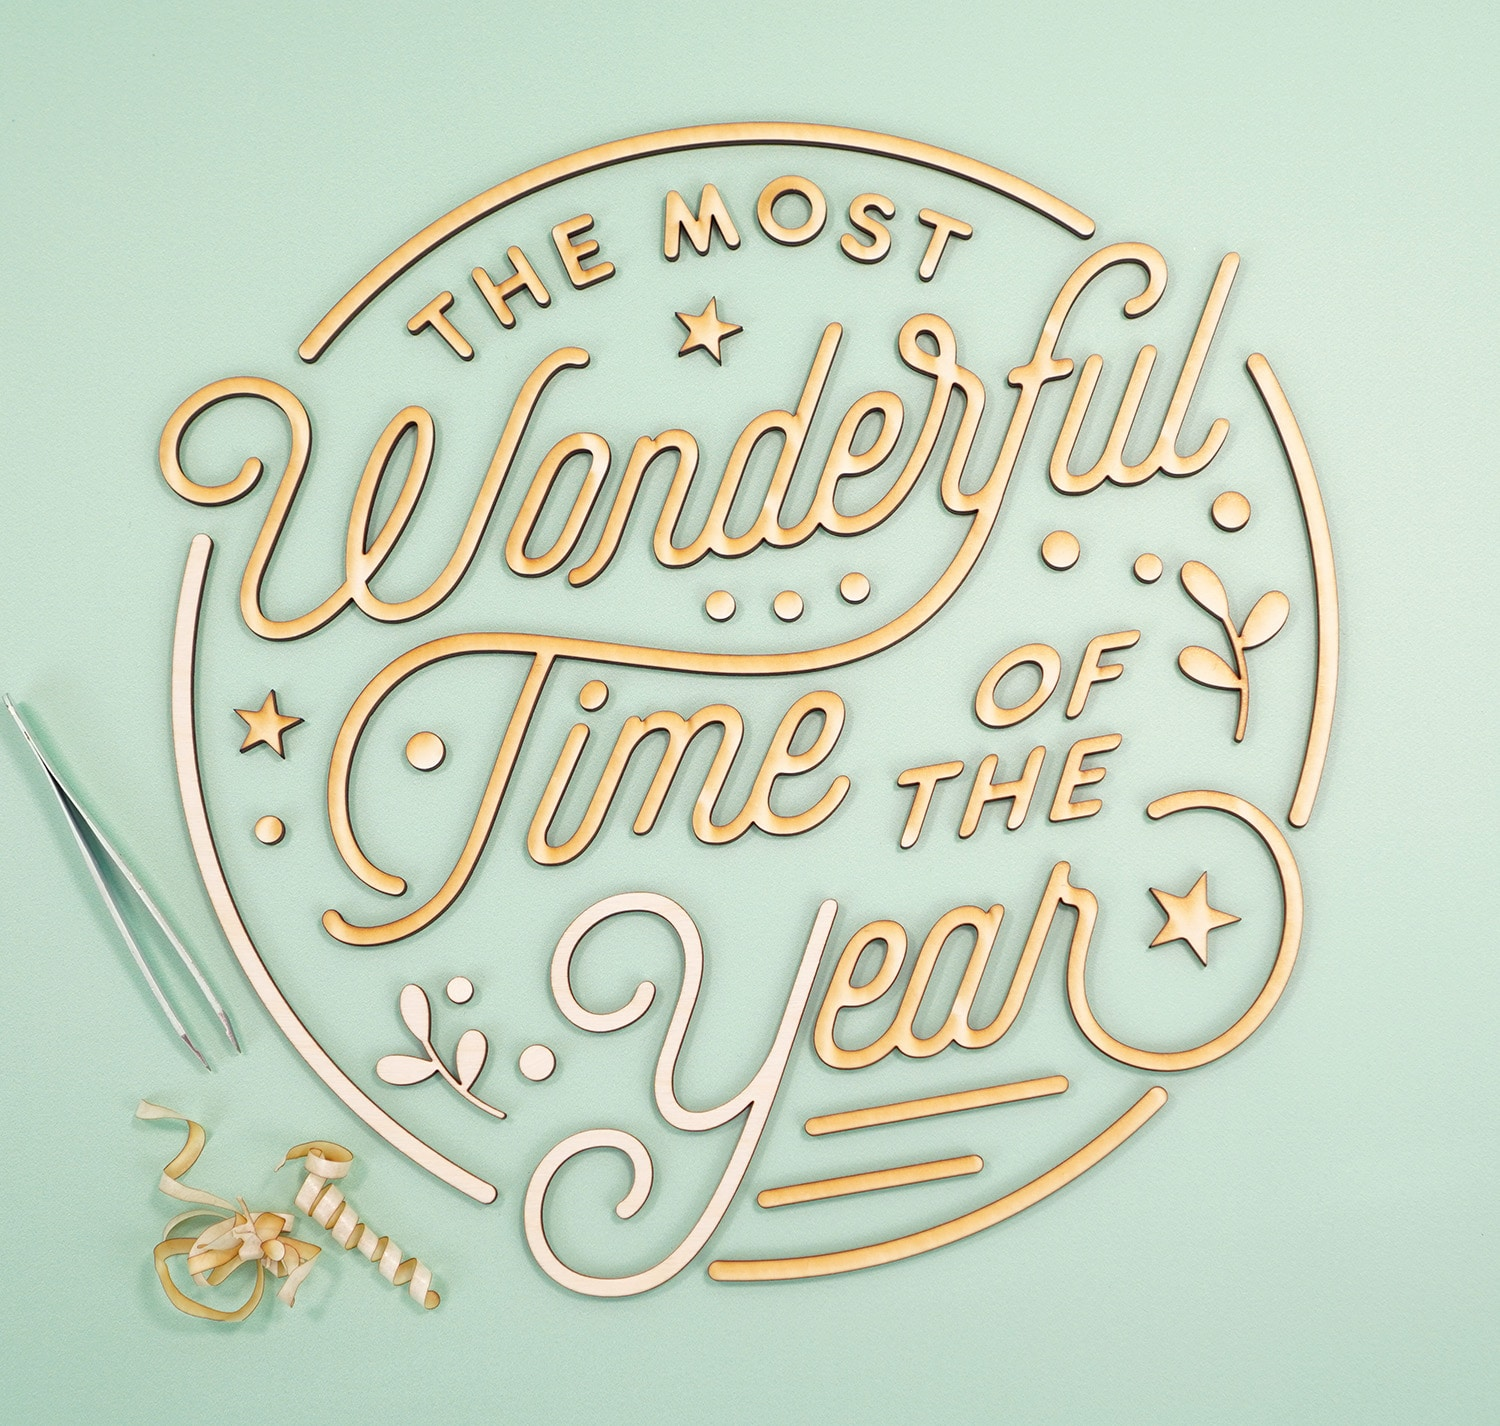 """""""The Most Wonderful Time of the Year' Laser Cut Wood Sign pieces with tweezers and pile of peeled off masking tape on mint green background"""